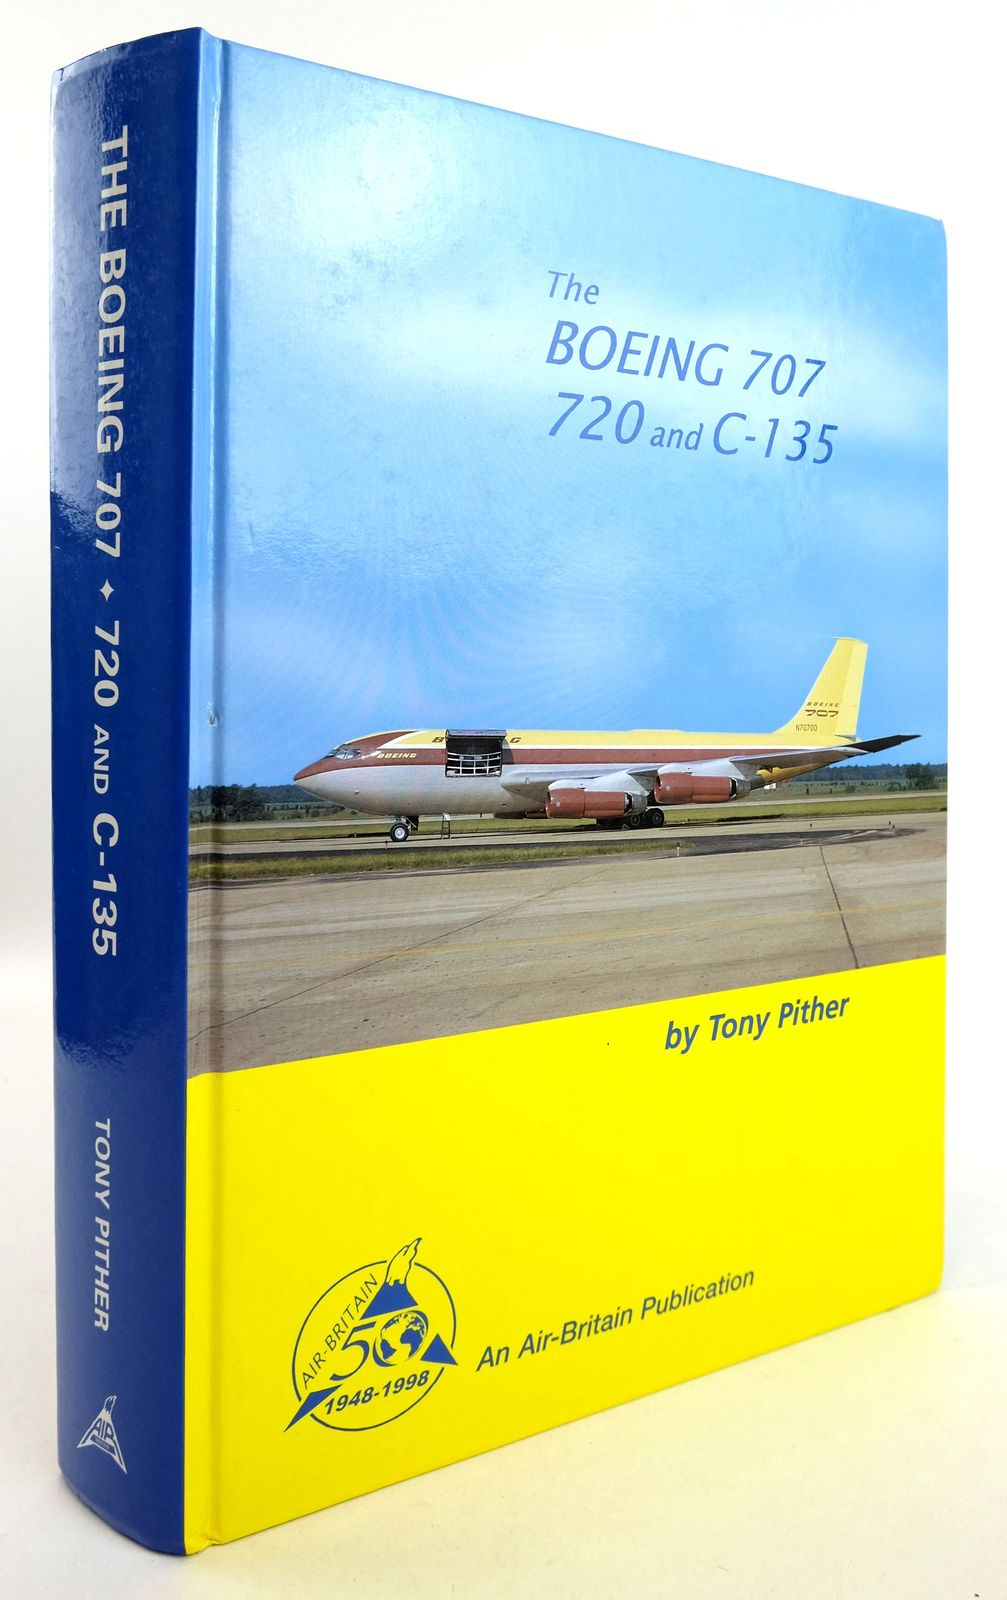 Photo of THE BOEING 707 720 AND C-135 written by Pither, Tony published by Air-Britain (Historians) Ltd. (STOCK CODE: 1819546)  for sale by Stella & Rose's Books